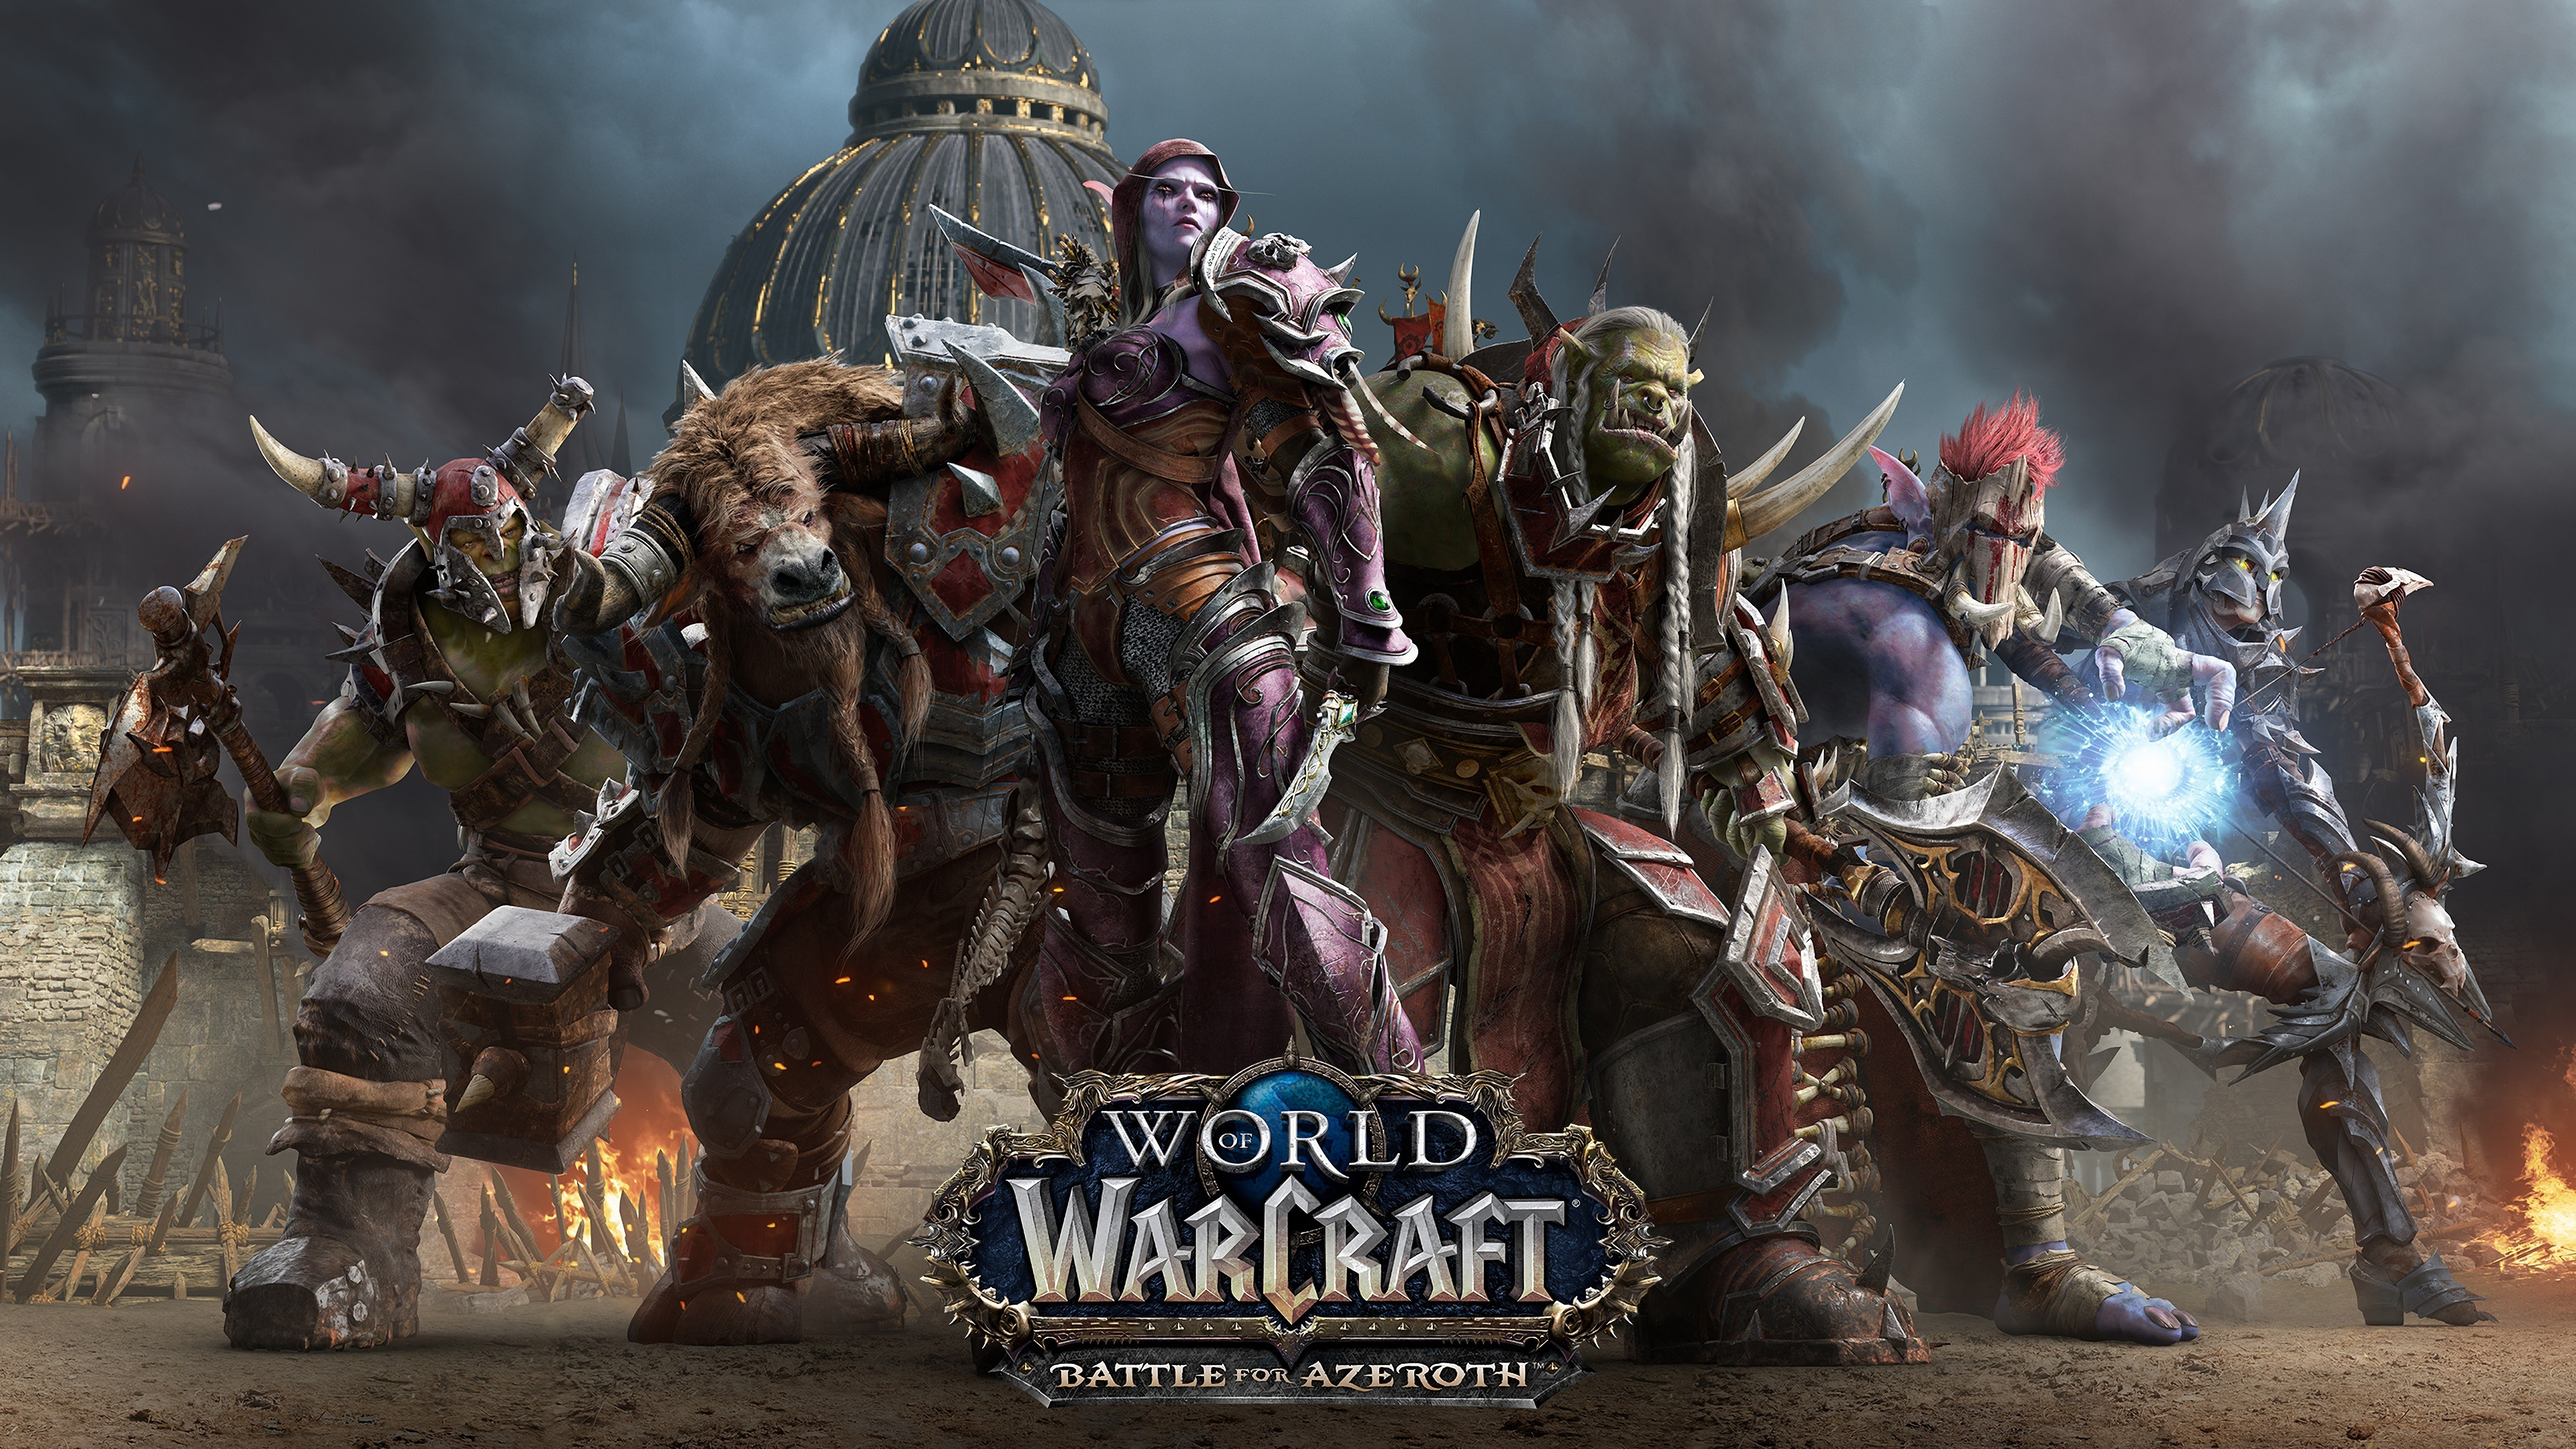 Wallpaper World Of Warcraft Battle For Azeroth Hot Game